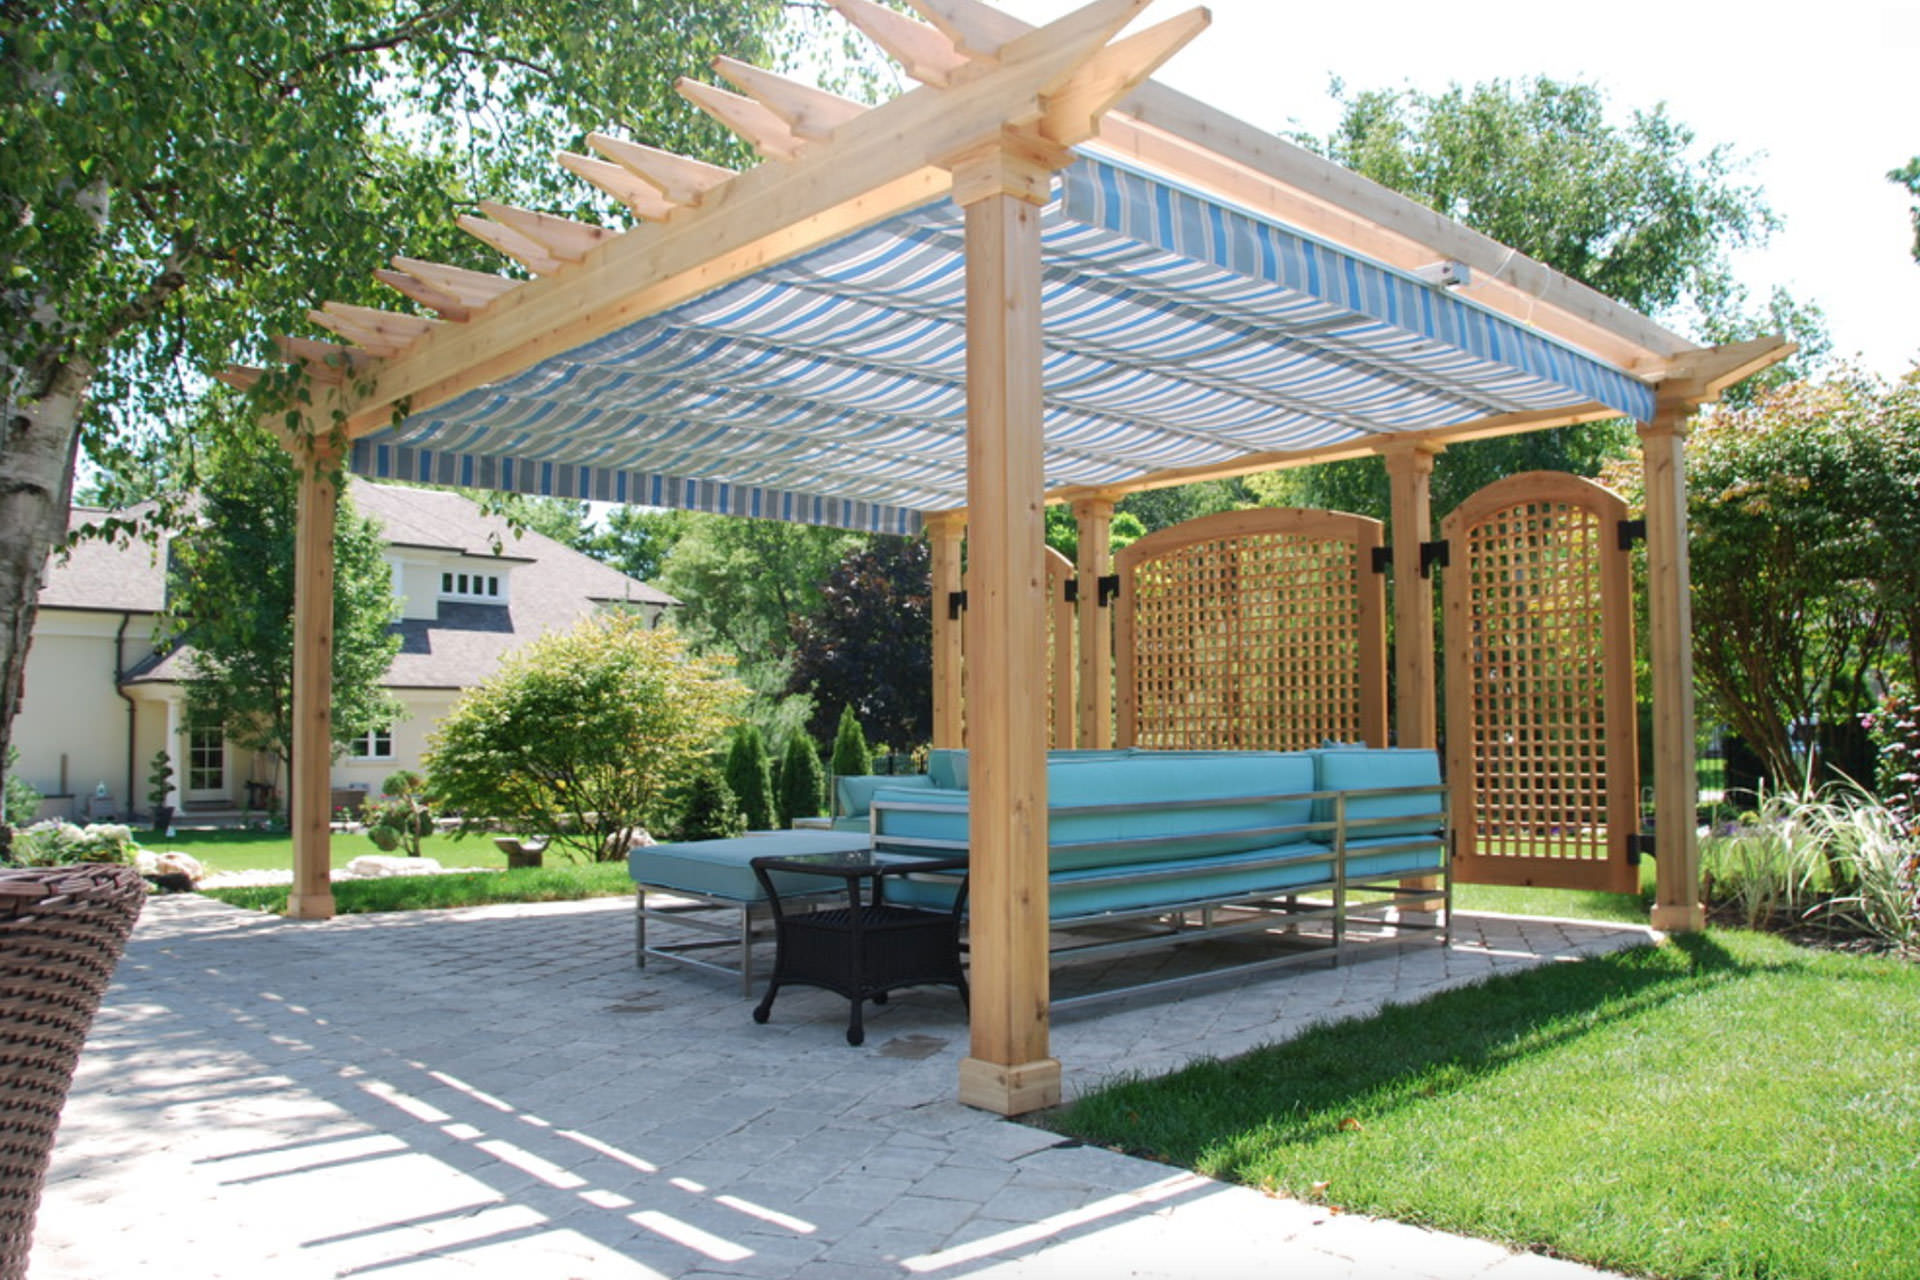 Retractable Awnings Vs Retractable Canopies